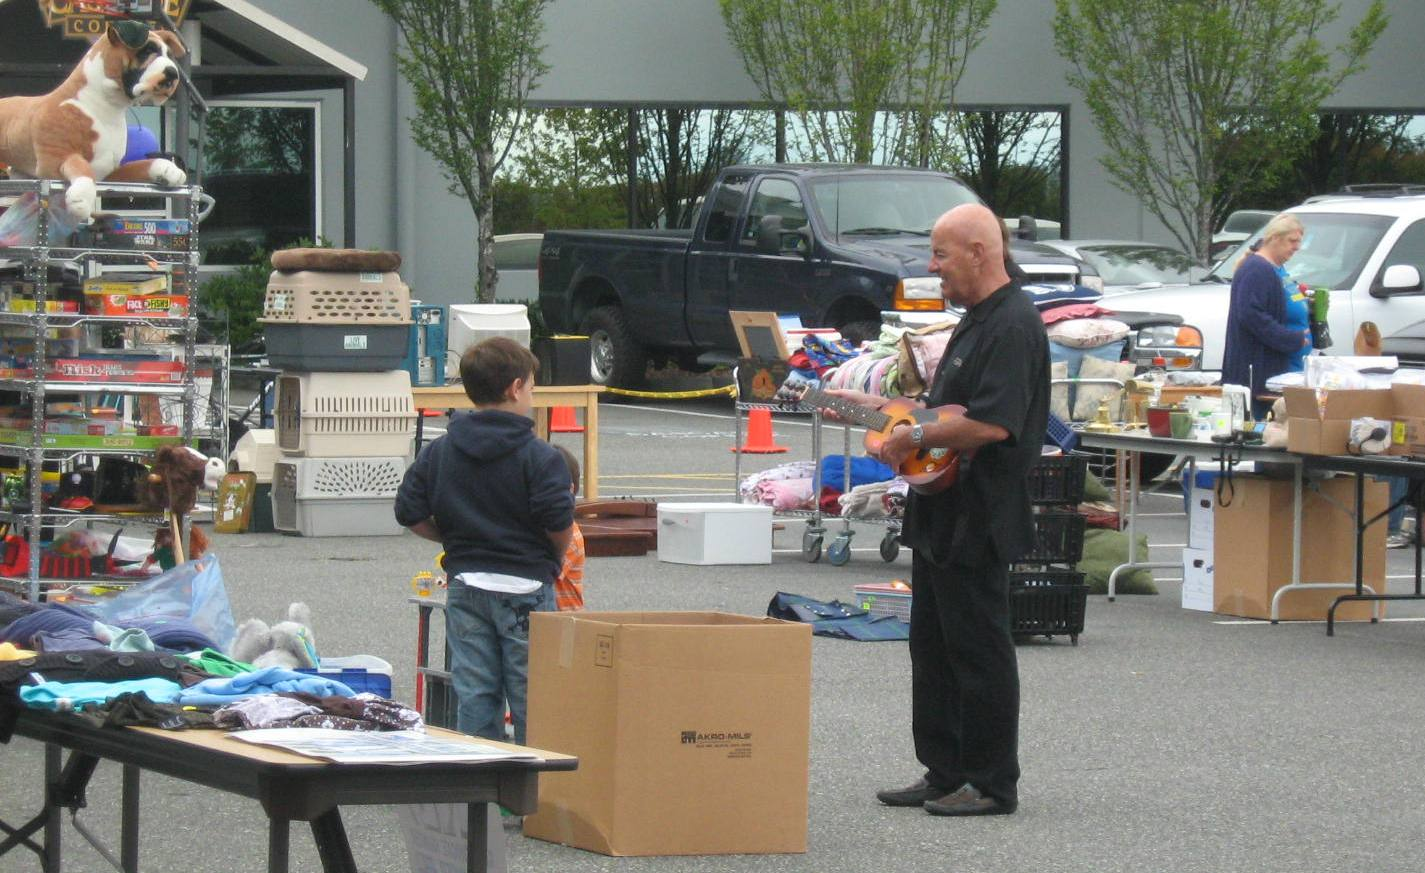 People browsing at garage sale